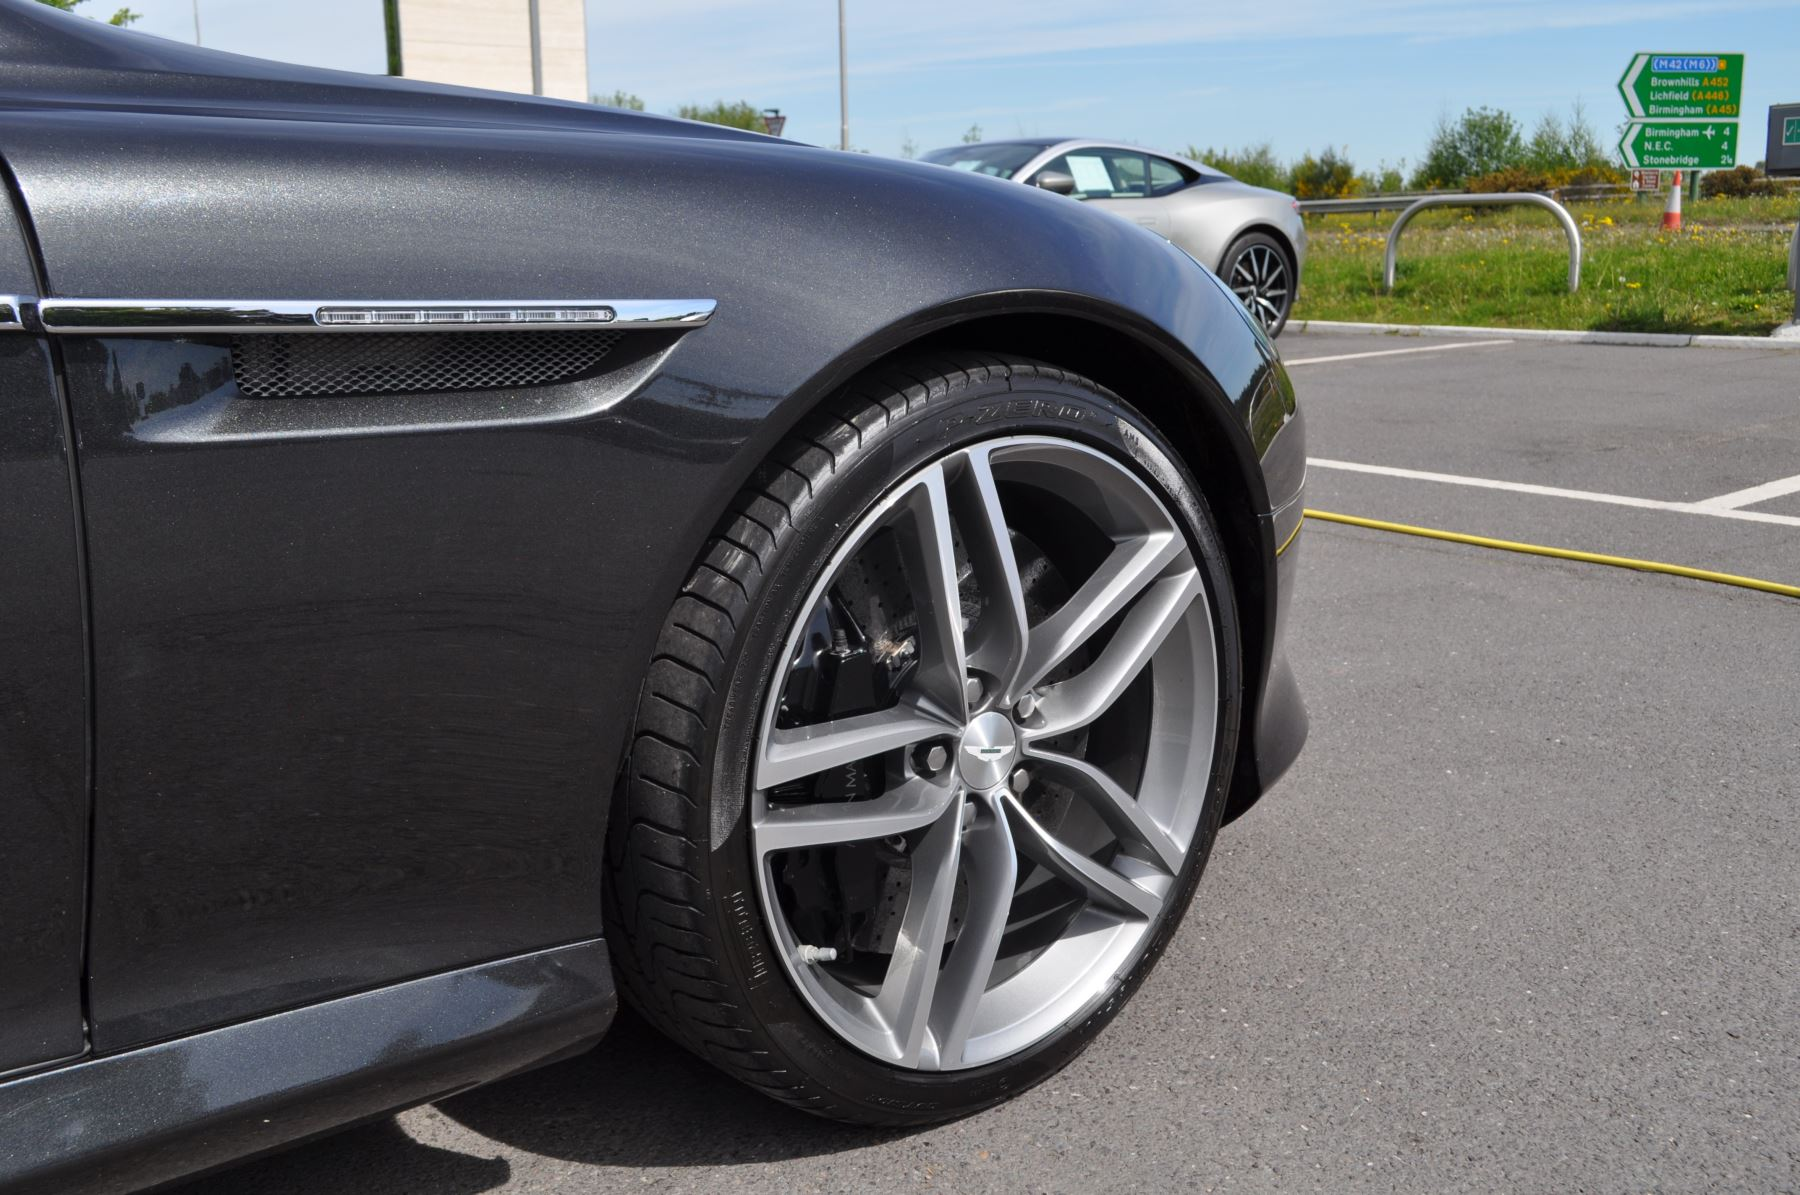 Aston Martin DB9 V12 2dr Touchtronic image 43